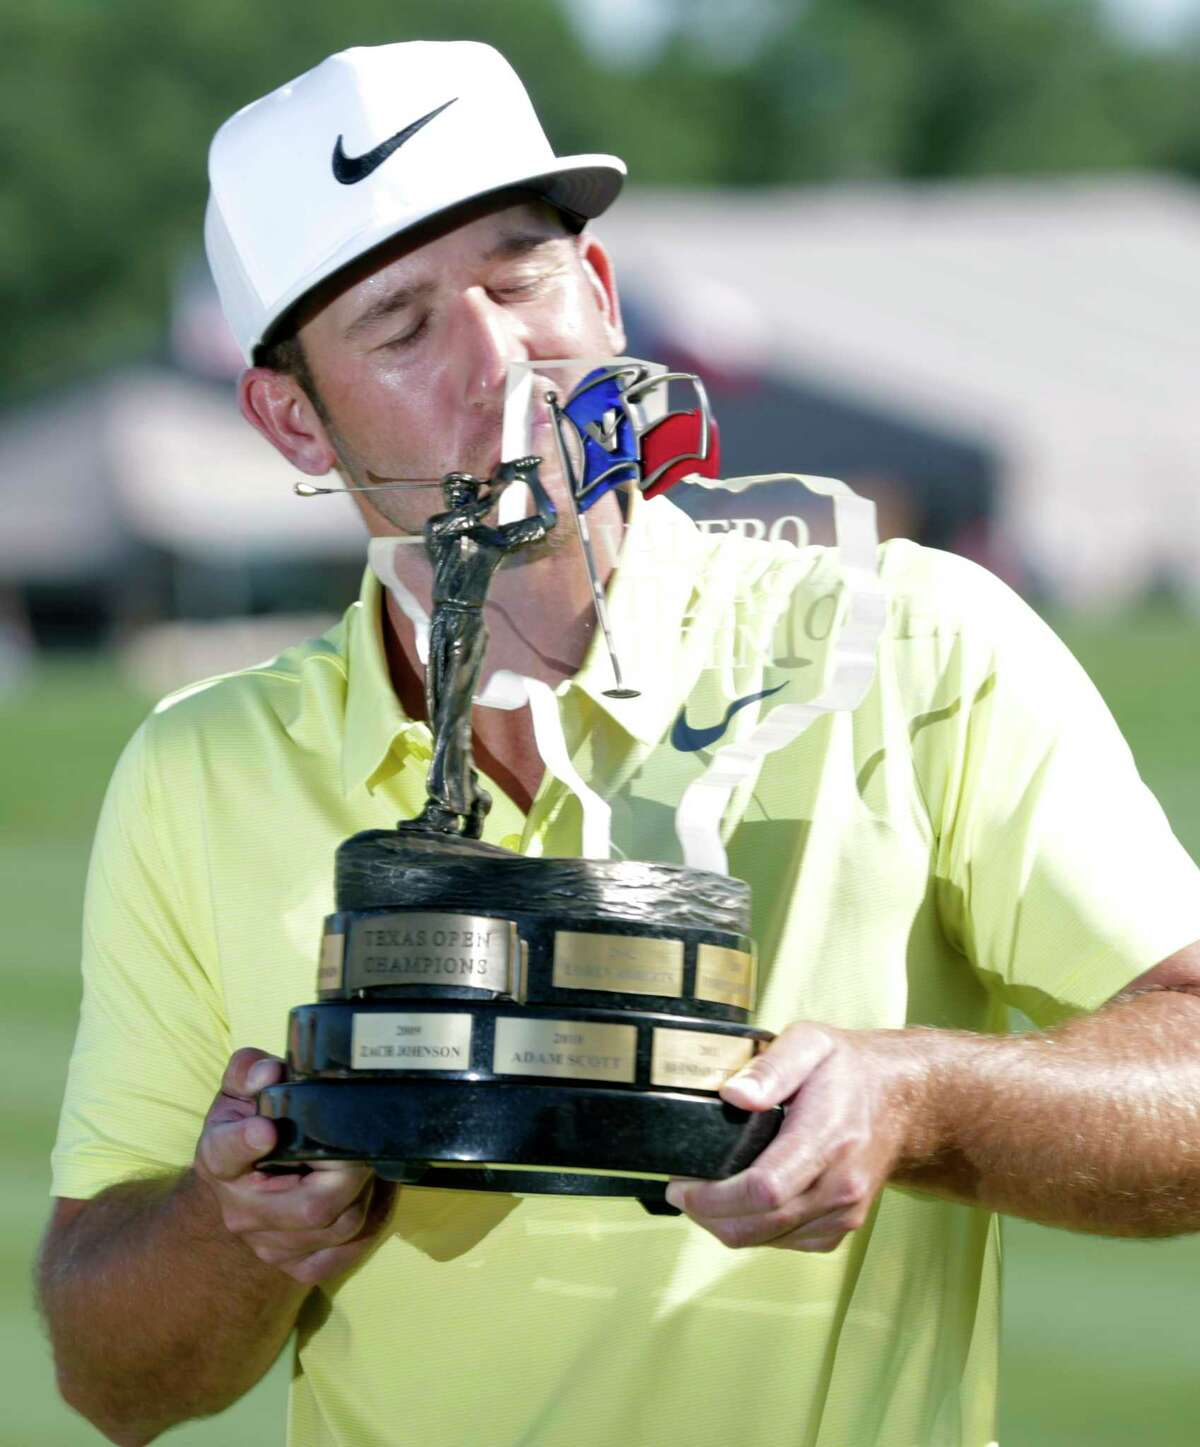 Kevin Chappell plants a kiss on the trophy after the final round of the Valero Texas Open at TPC San Antonio Oaks Course on April 23, 2017.